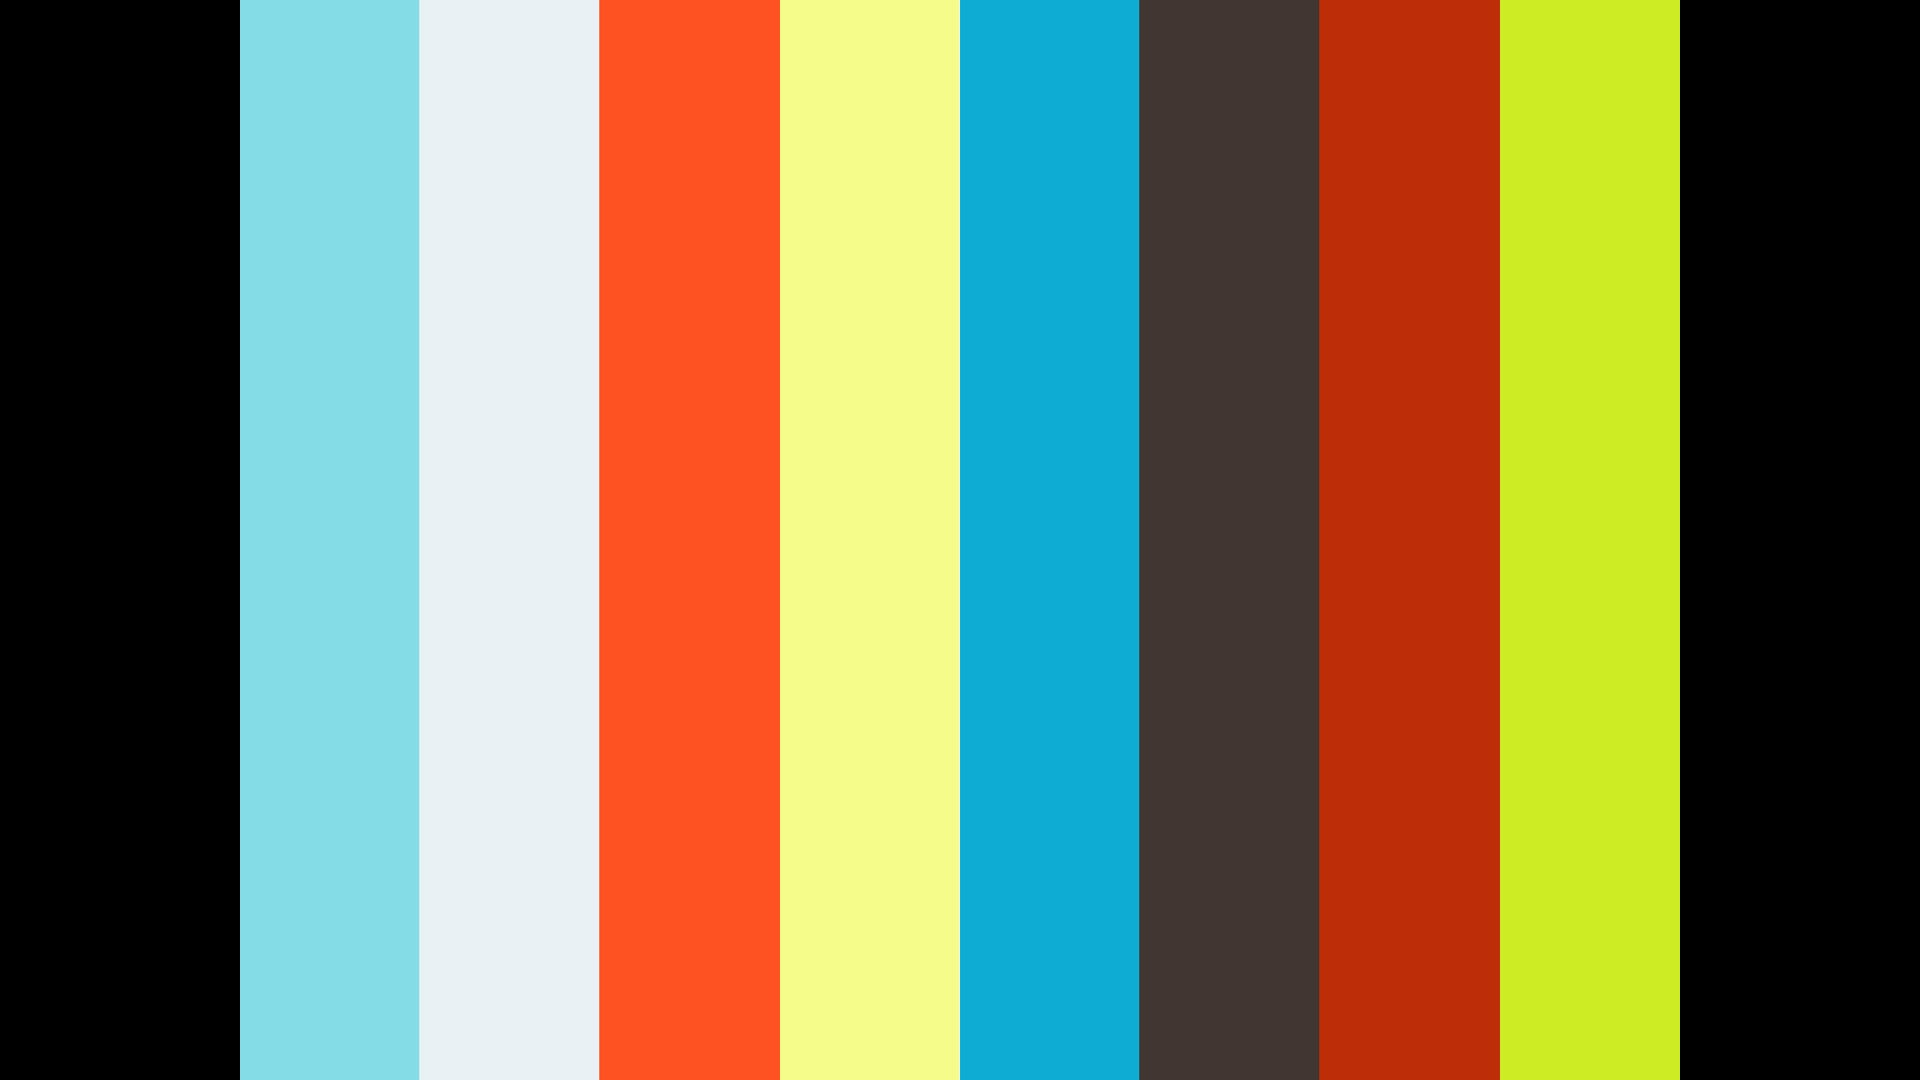 Unitrends at ChannelNext Central 2019